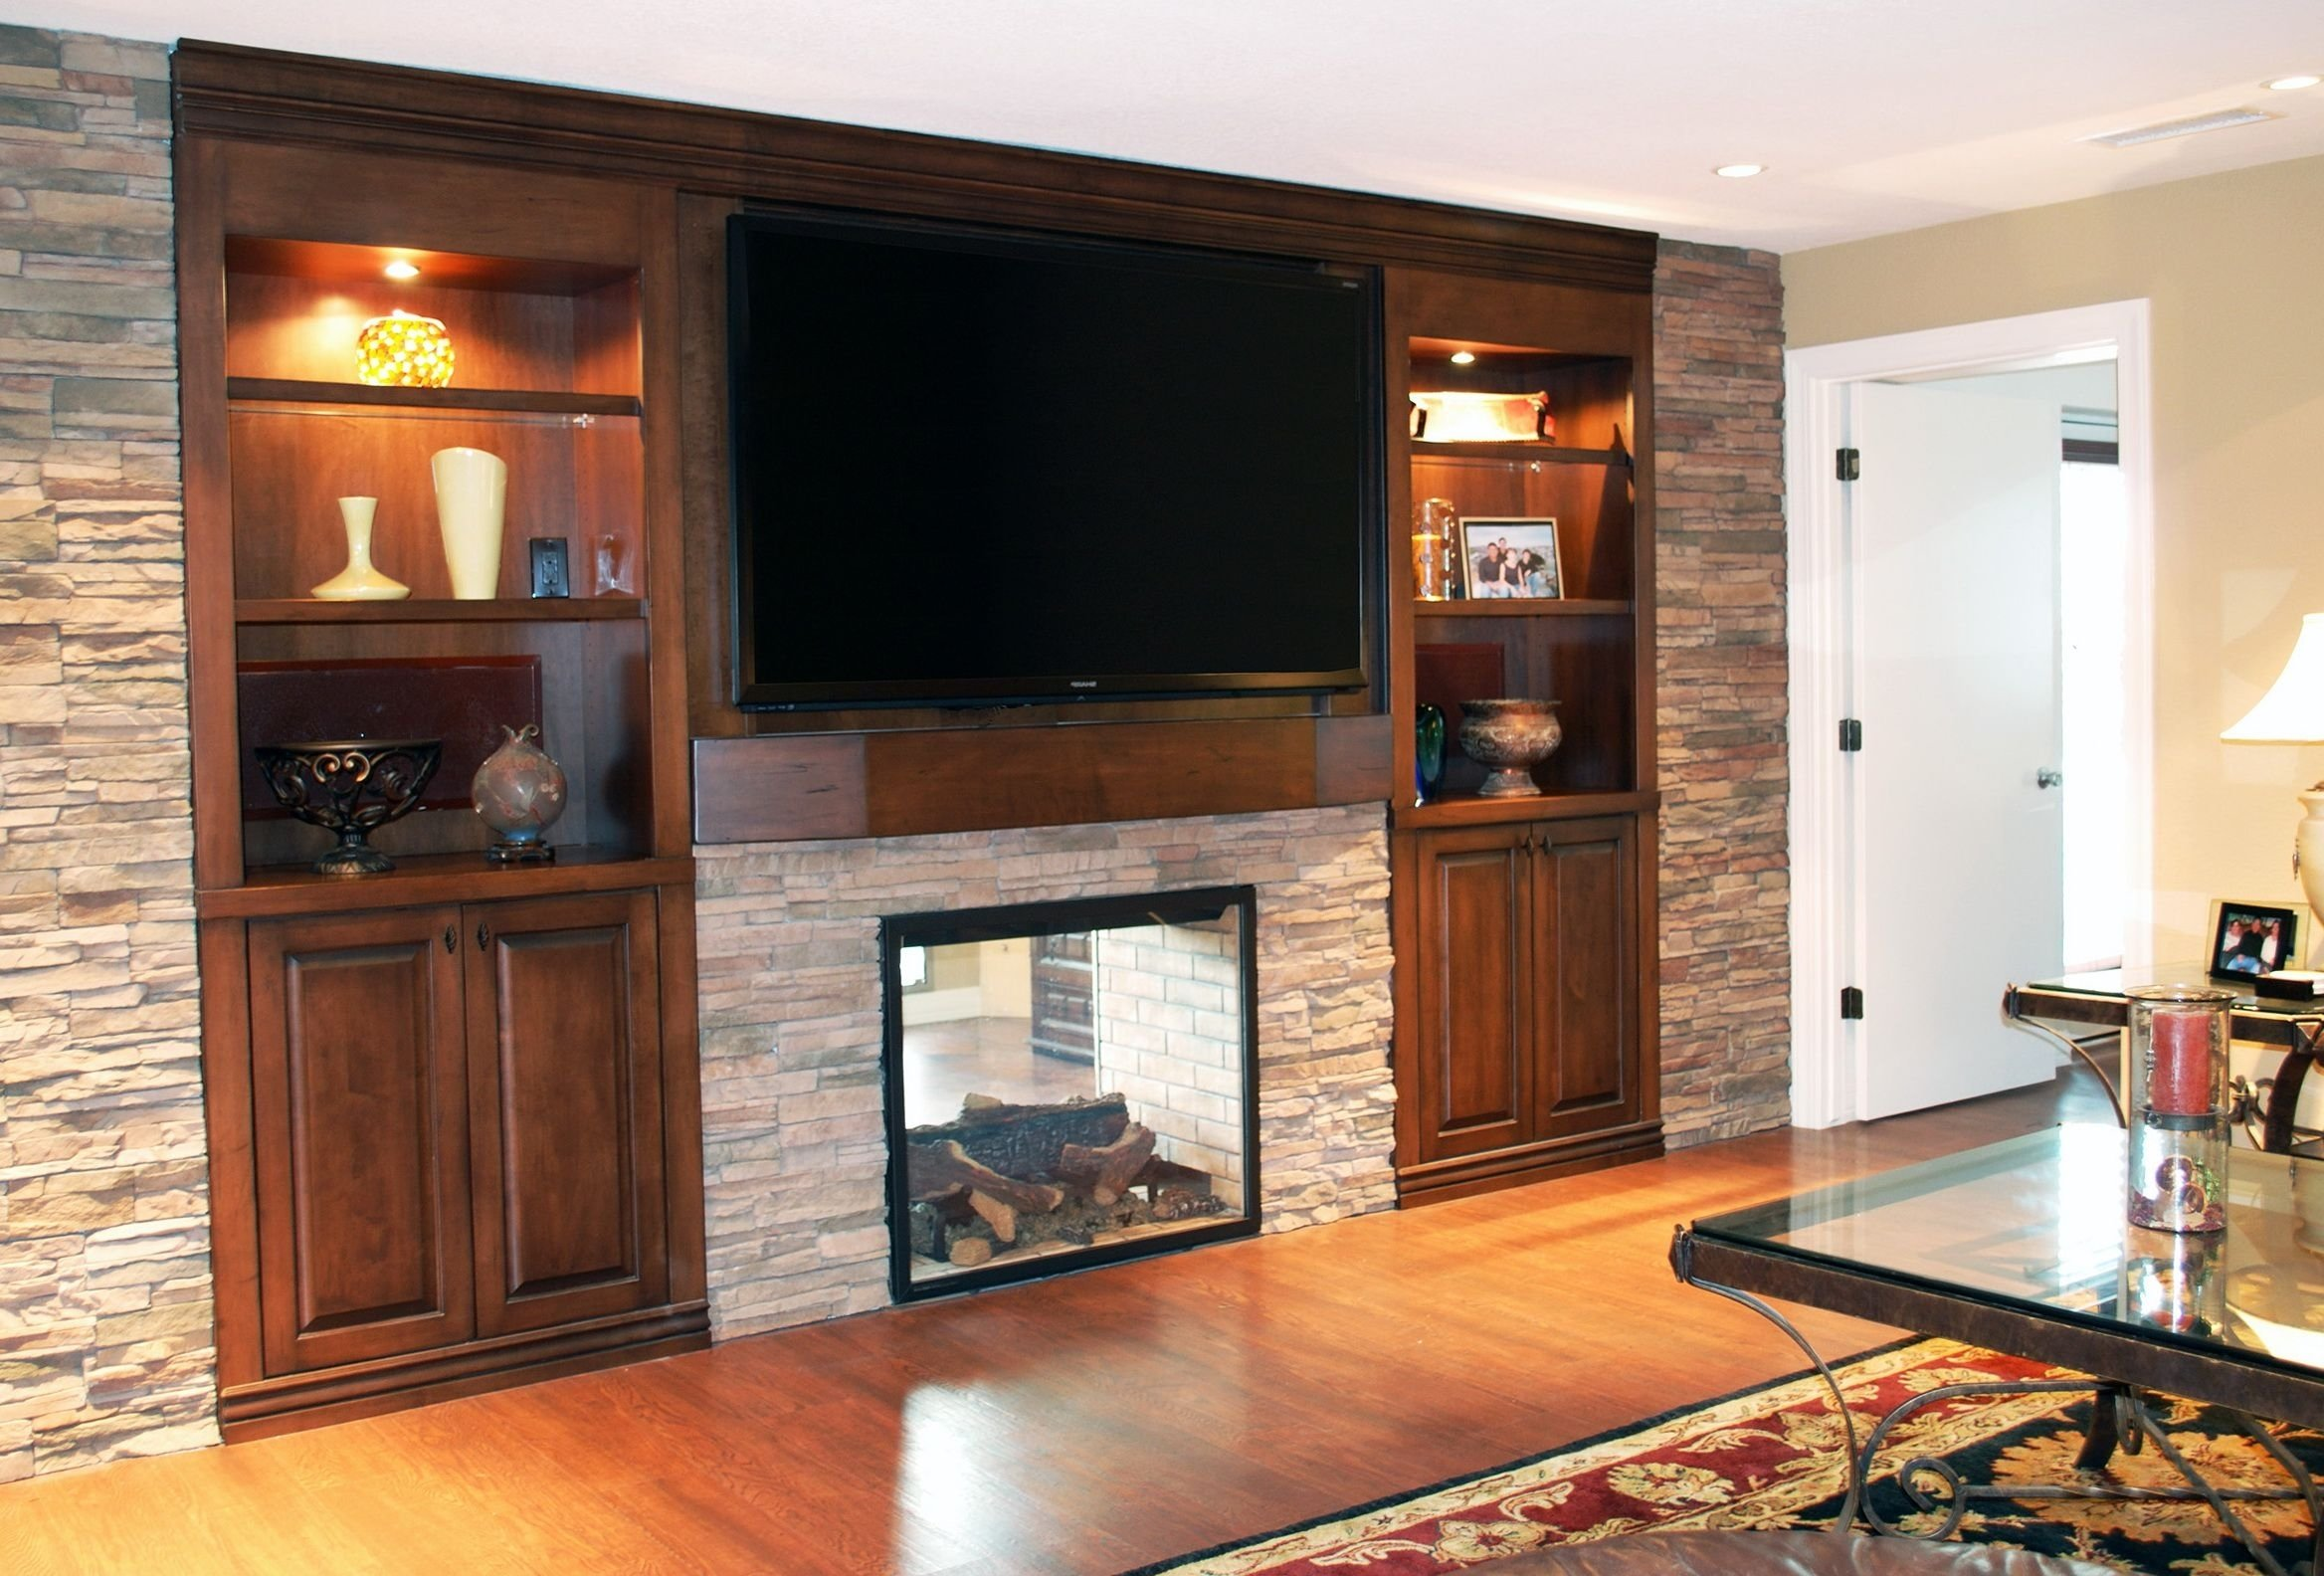 10 Awesome Built In Entertainment Center Ideas wall entertainment center with fireplace fireplace pinterest